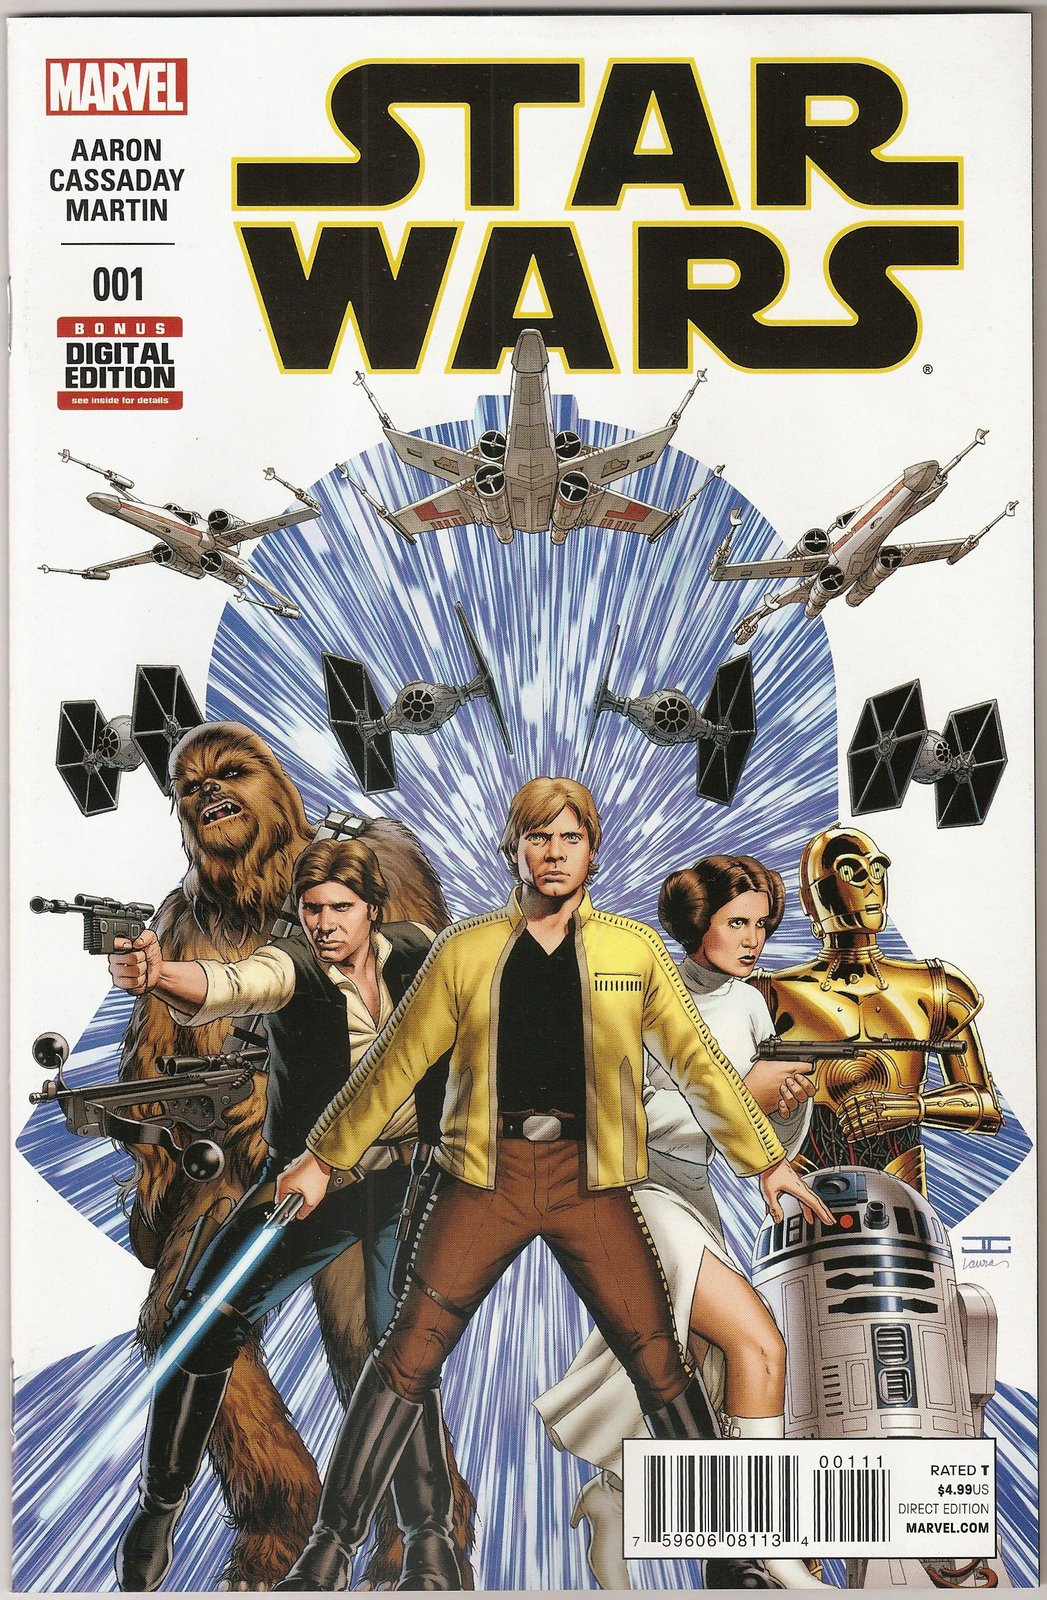 Star Wars 2015  Comic Book Issue #1 John Cassaday Jason Aaron - Marvel Comics